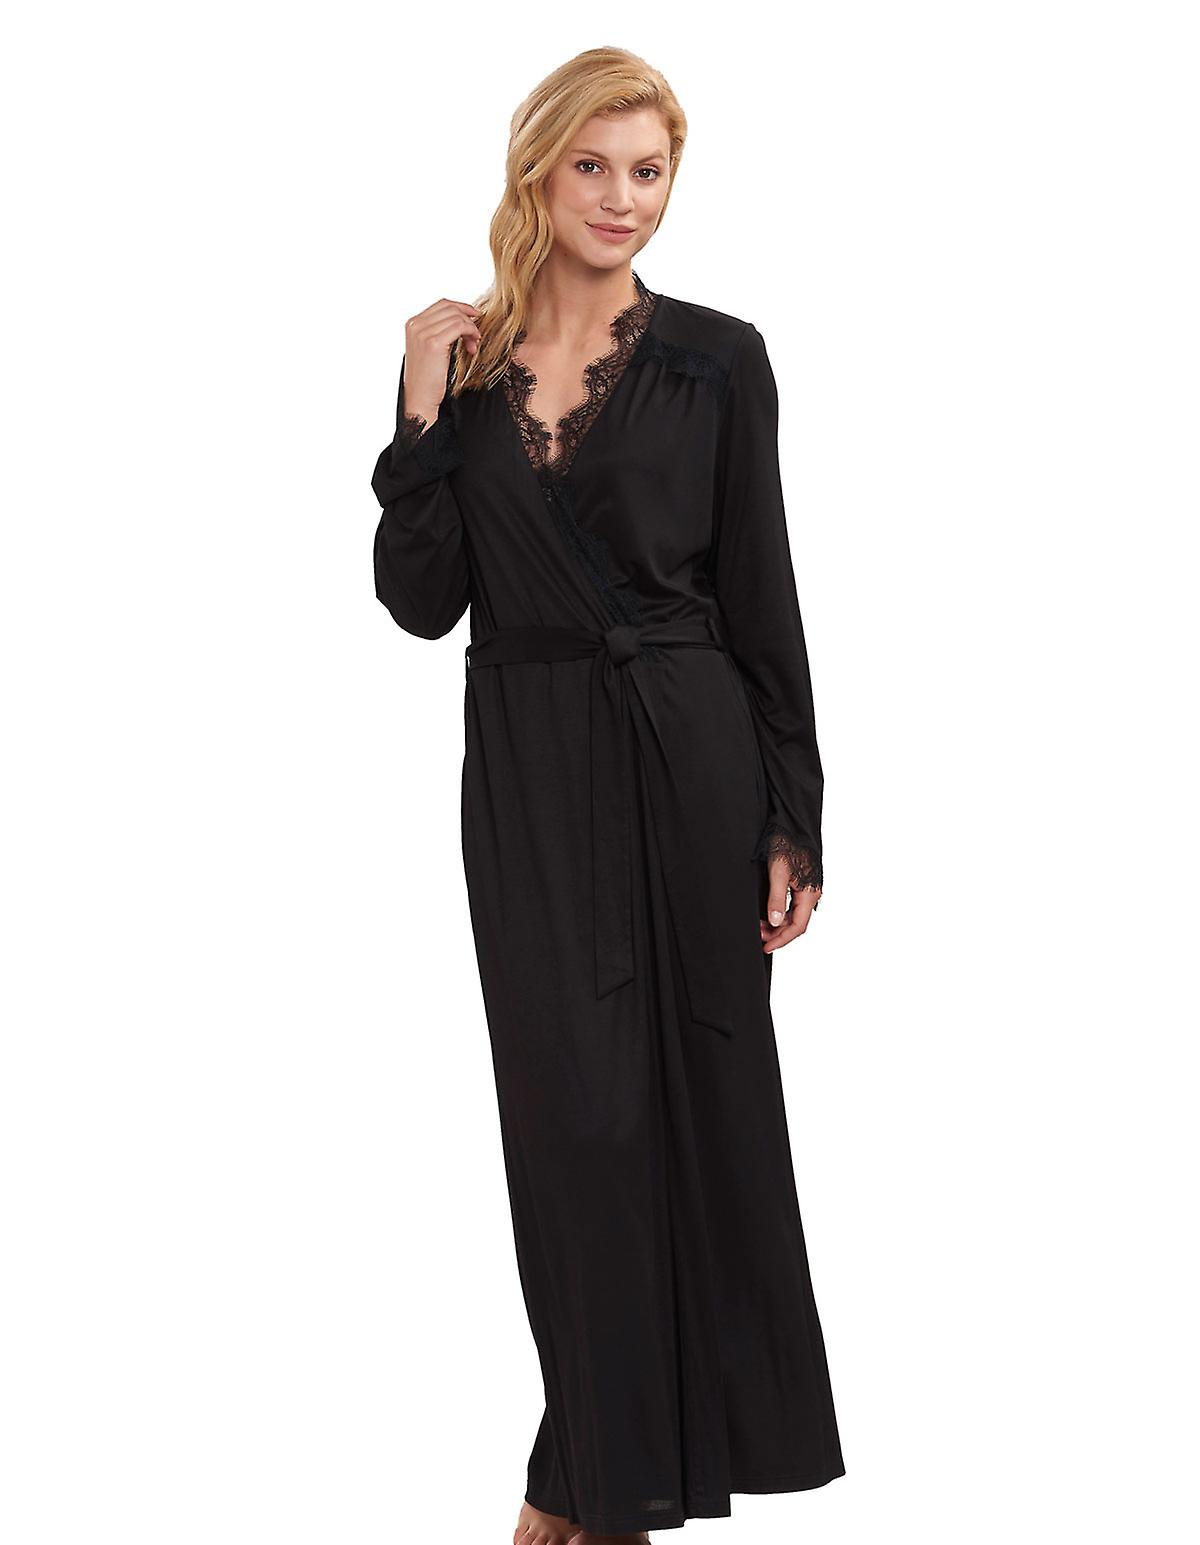 Feraud 3191226 femmes&s Couture Lace Robe Loungewear Bath Dressing Gown